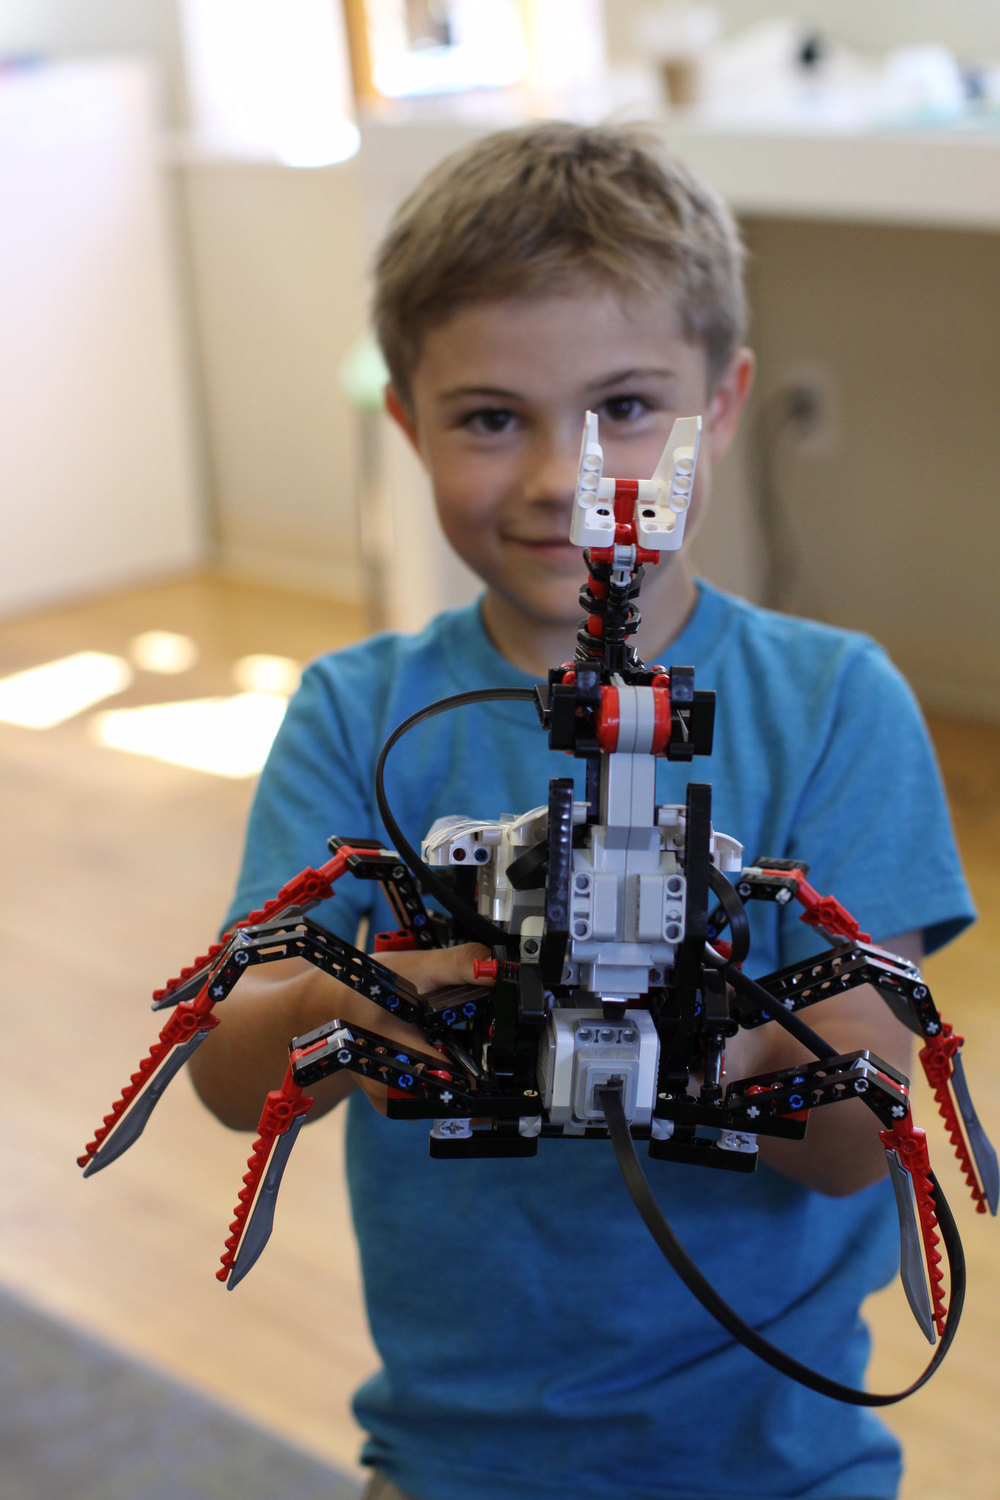 Showing off a completed LEGO EV3 robot.